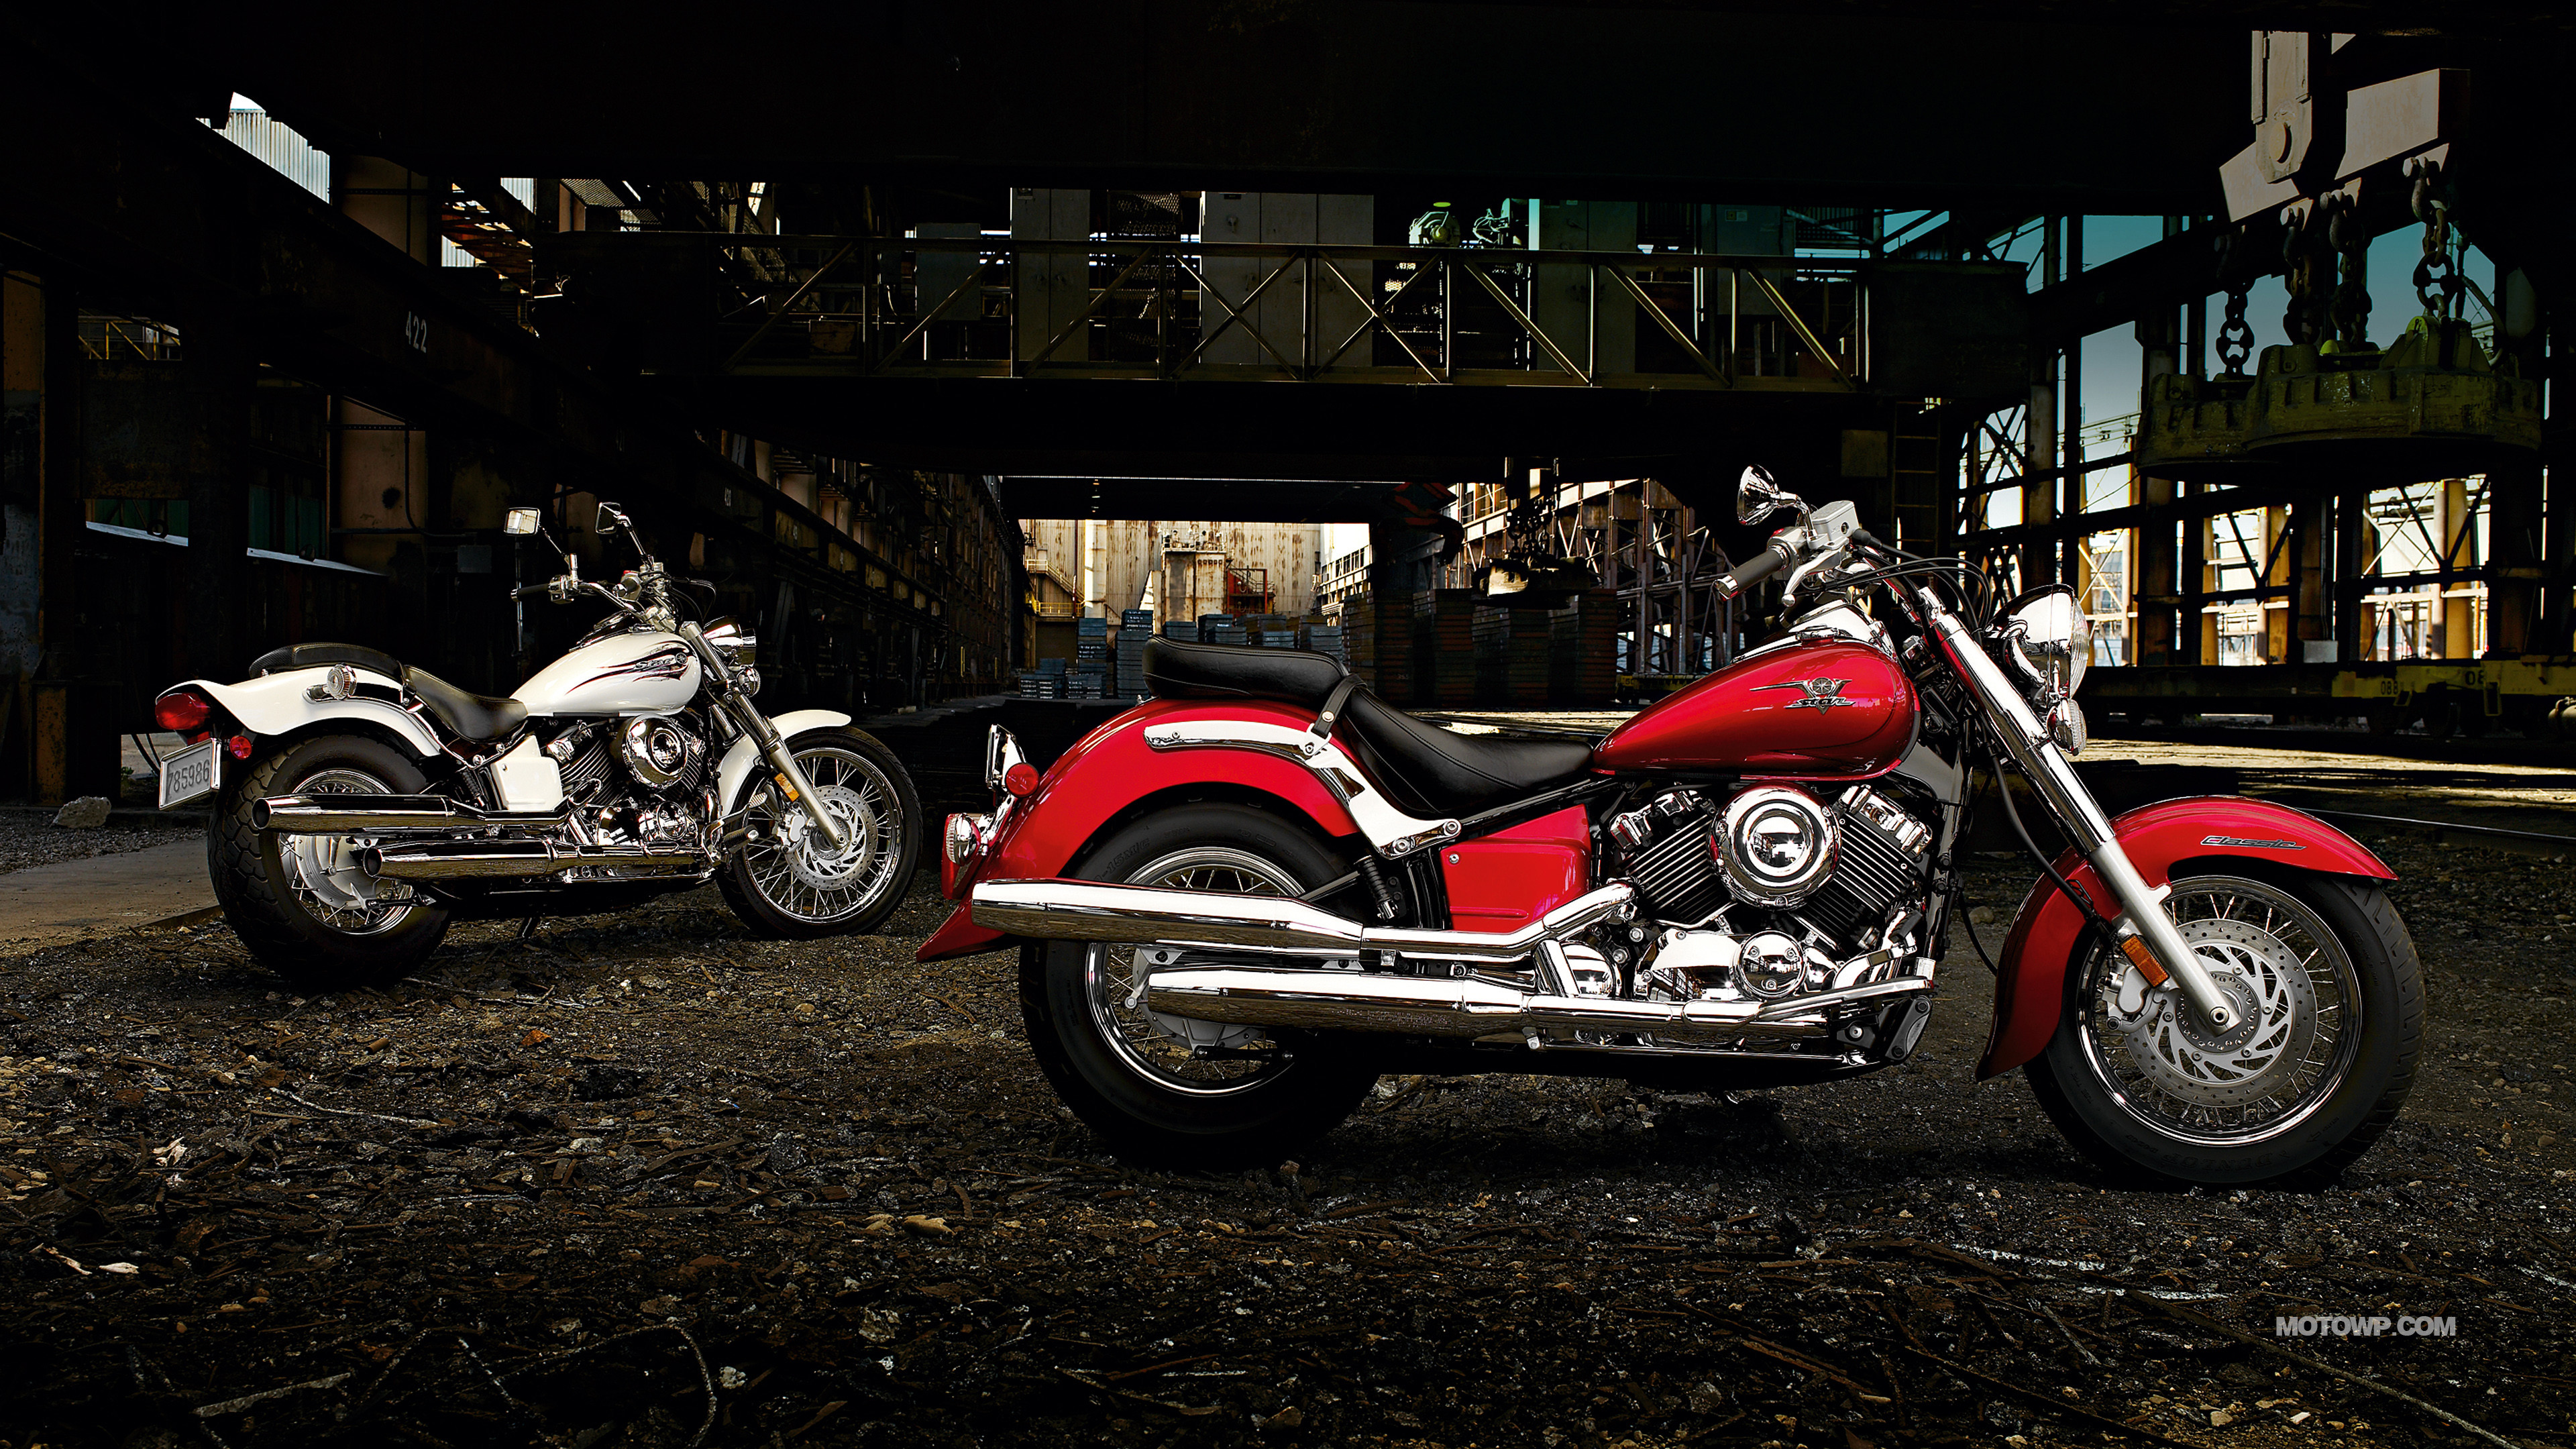 Res: 3840x2160, Motorcycles wallpapers Yamaha V Star Classic - 2010 - Car wallpapers